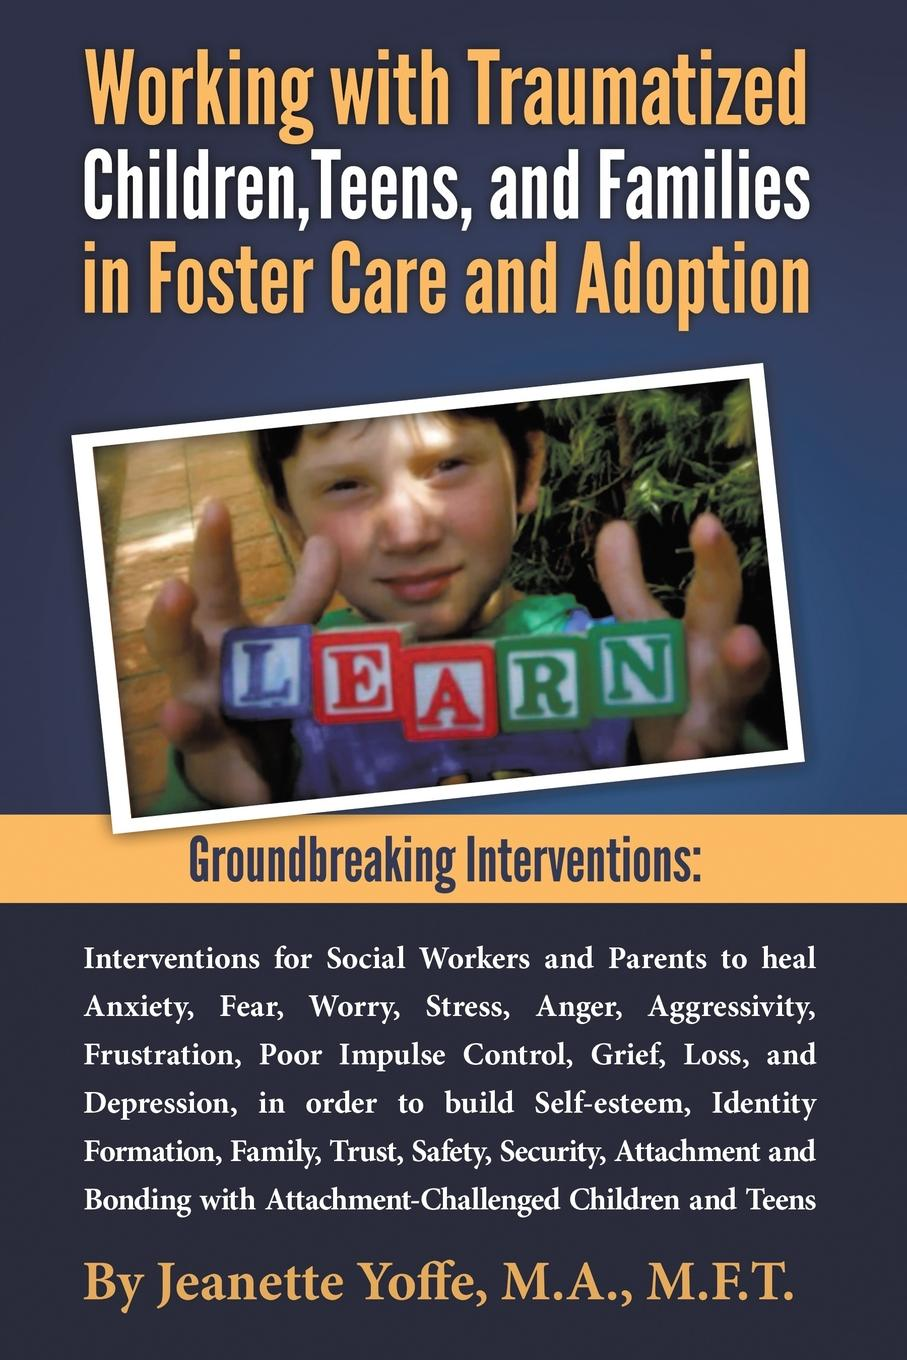 M.F.T. Jeanette Yoffe Groundbreaking Interventions. Working with Traumatized Children, Teens and Families in Foster Care and Adoption fallon april e working with adoptive parents research theory and therapeutic interventions